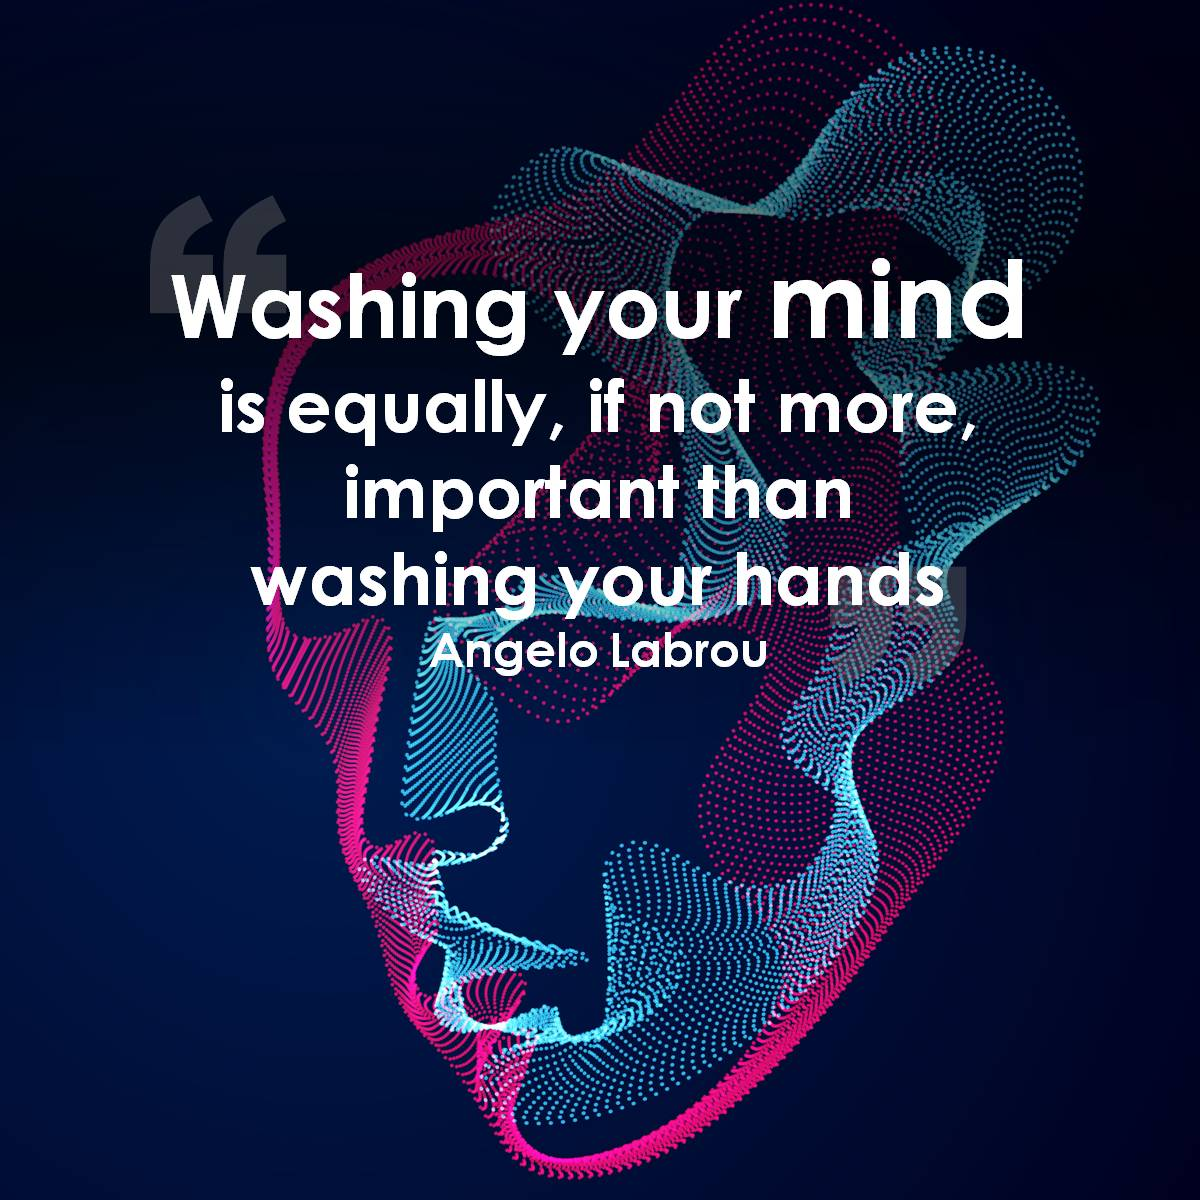 Coronavirus: Wash your mind as well as your hands